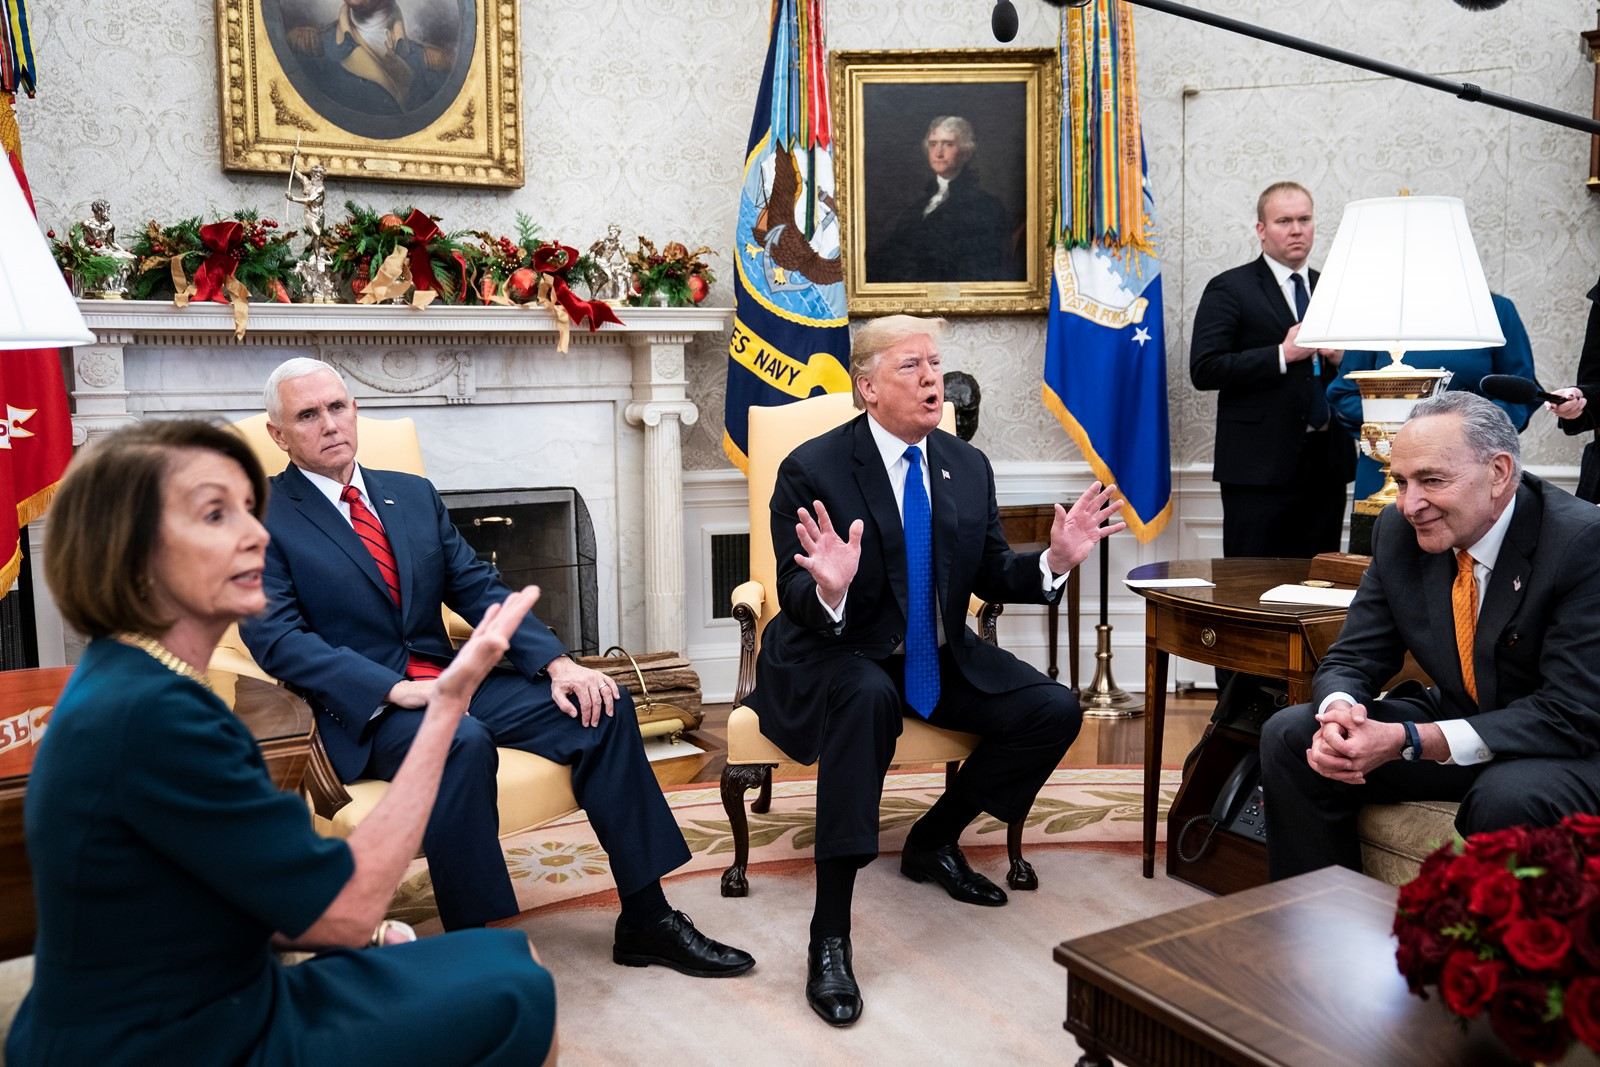 Democratic leaders Nancy Pelosi and Charles E. Schumer, right, meet with President Donald J. Trump and Vice President Mike Pence. — Photograph: Jabin Bostford/The Washington Post.